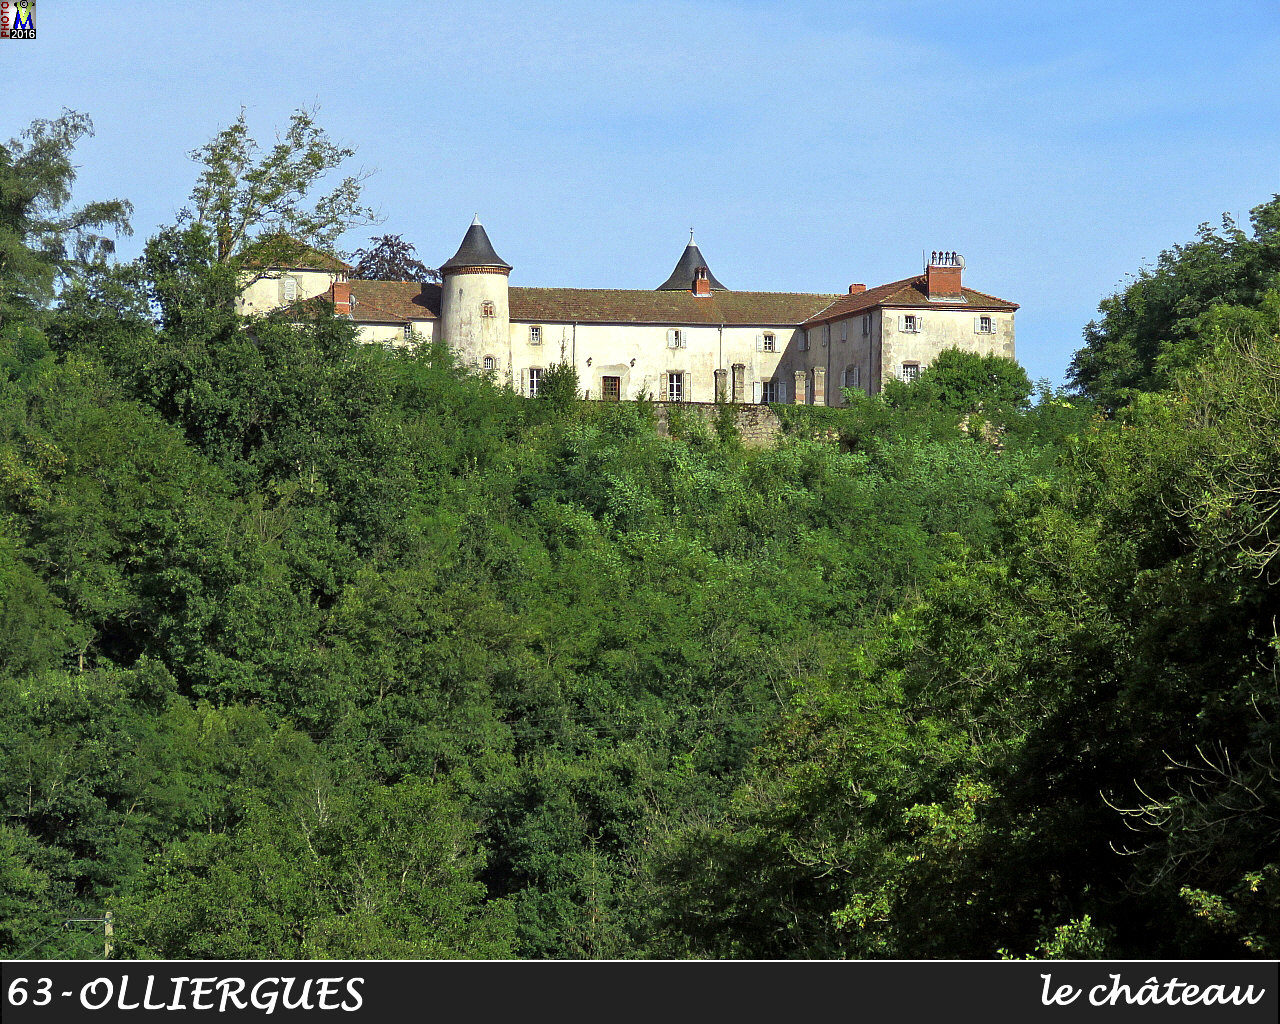 63OLLIERGUES_chateau_100.jpg